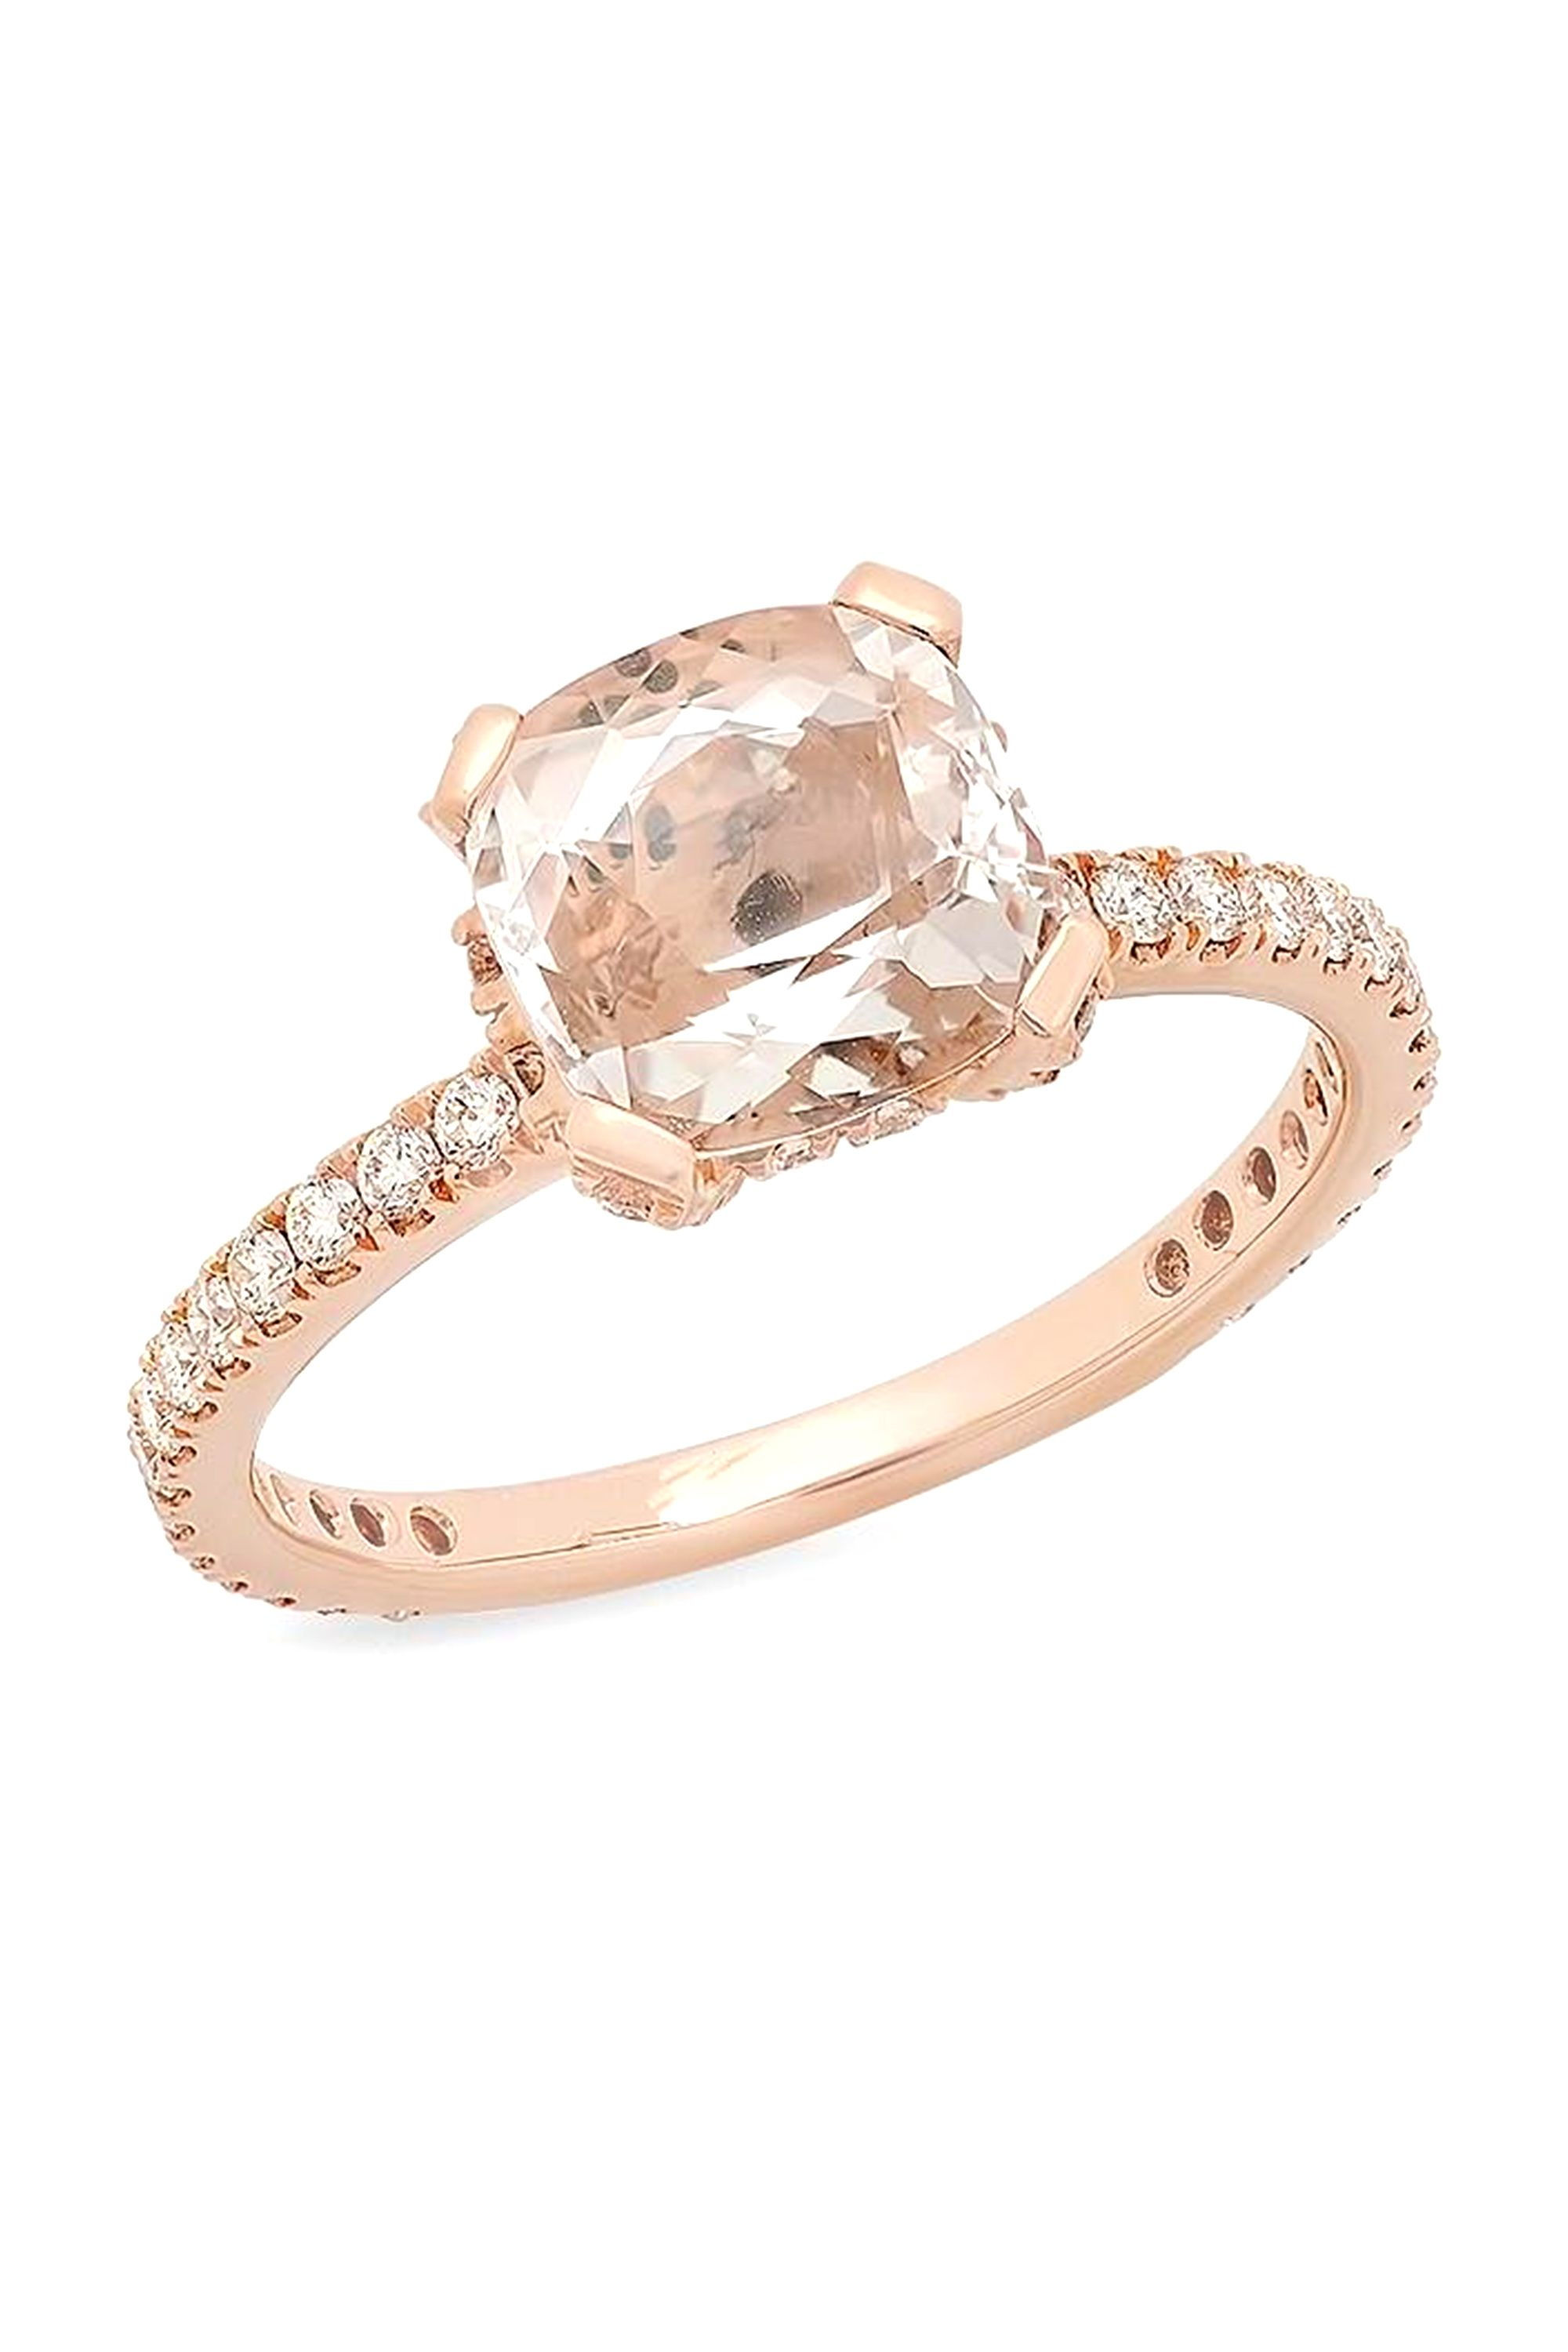 "<p>Beverley K Engagement Ring; for more information visit <a href=""http://www.beverleyk.com/bridal/r11208-d-morg.html"" target=""_blank"">beverleyk.com</a></p>"